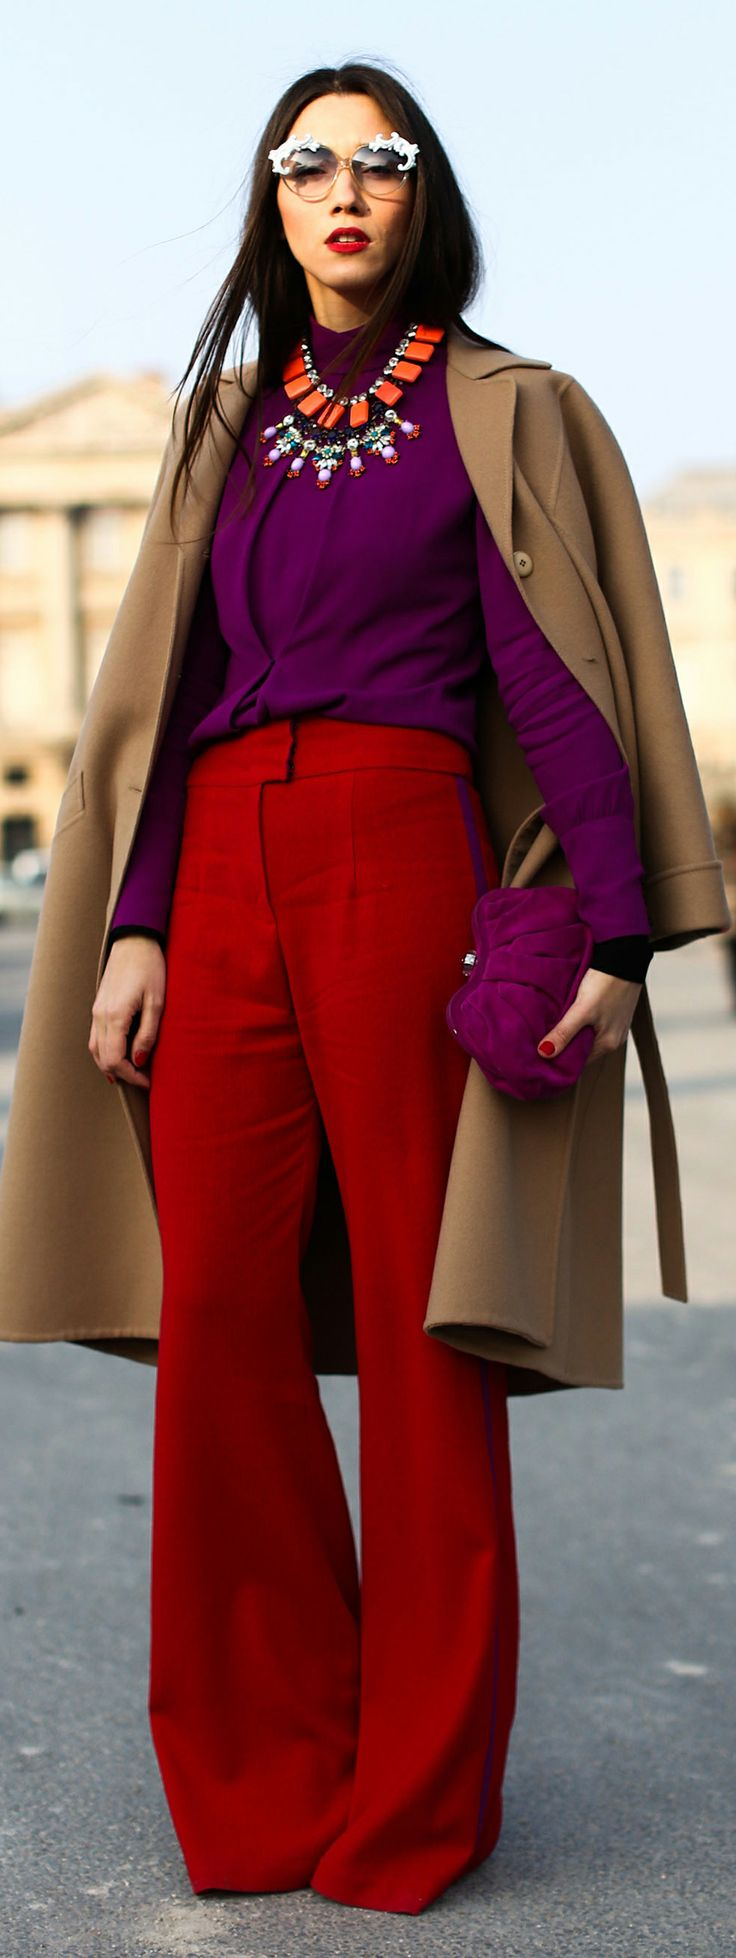 Start planning your chicest pink and red outfit - see more street style ideas here!